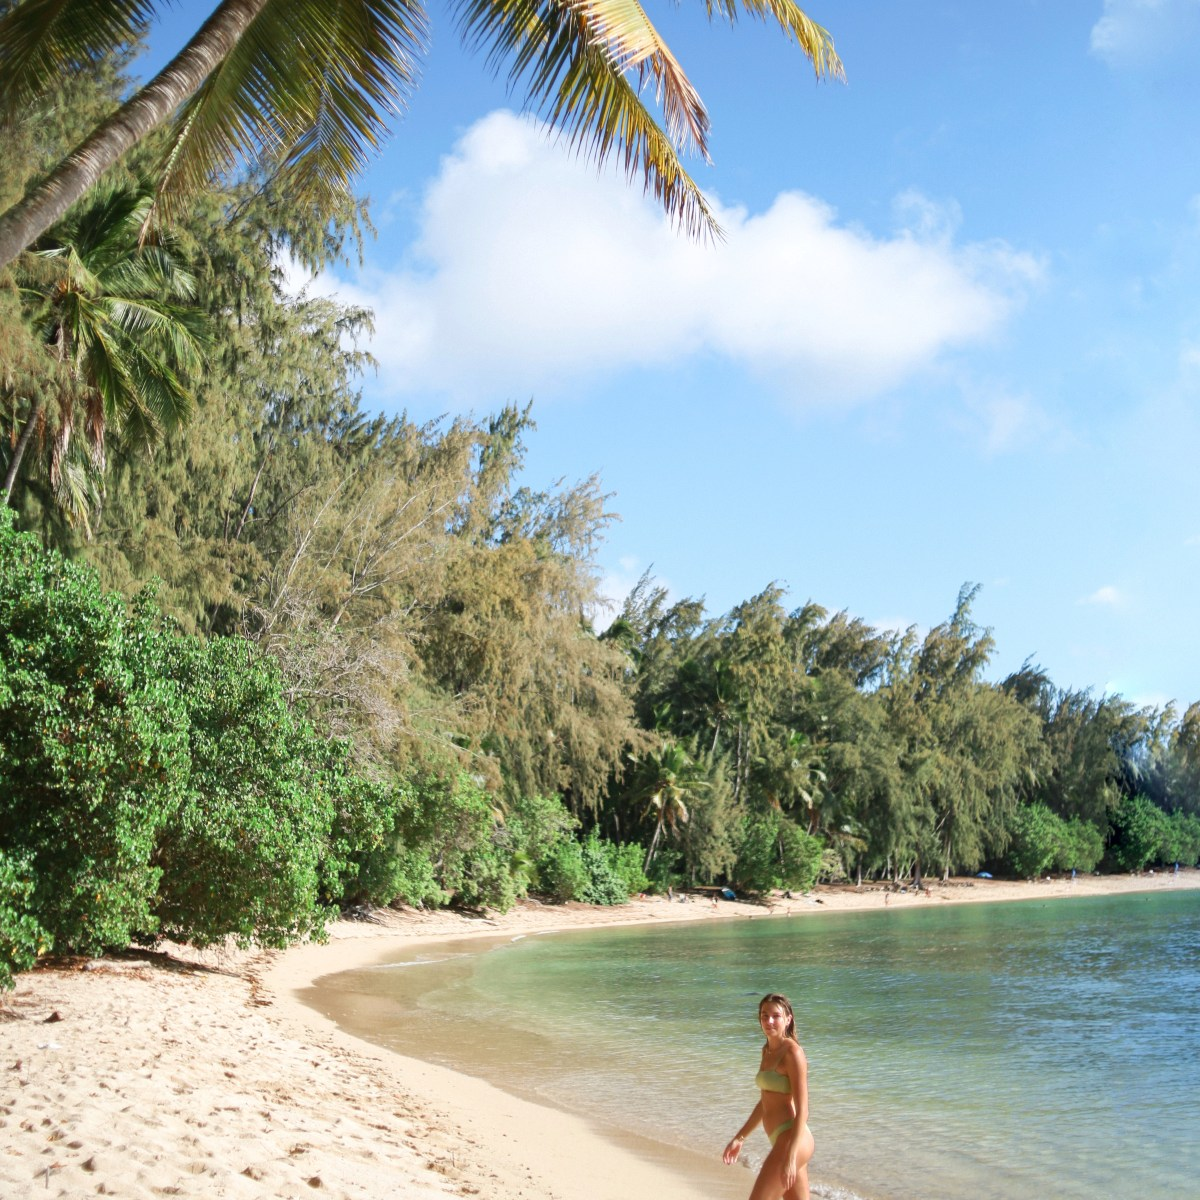 Beach Day North Shore Hawaii - Travel Guide